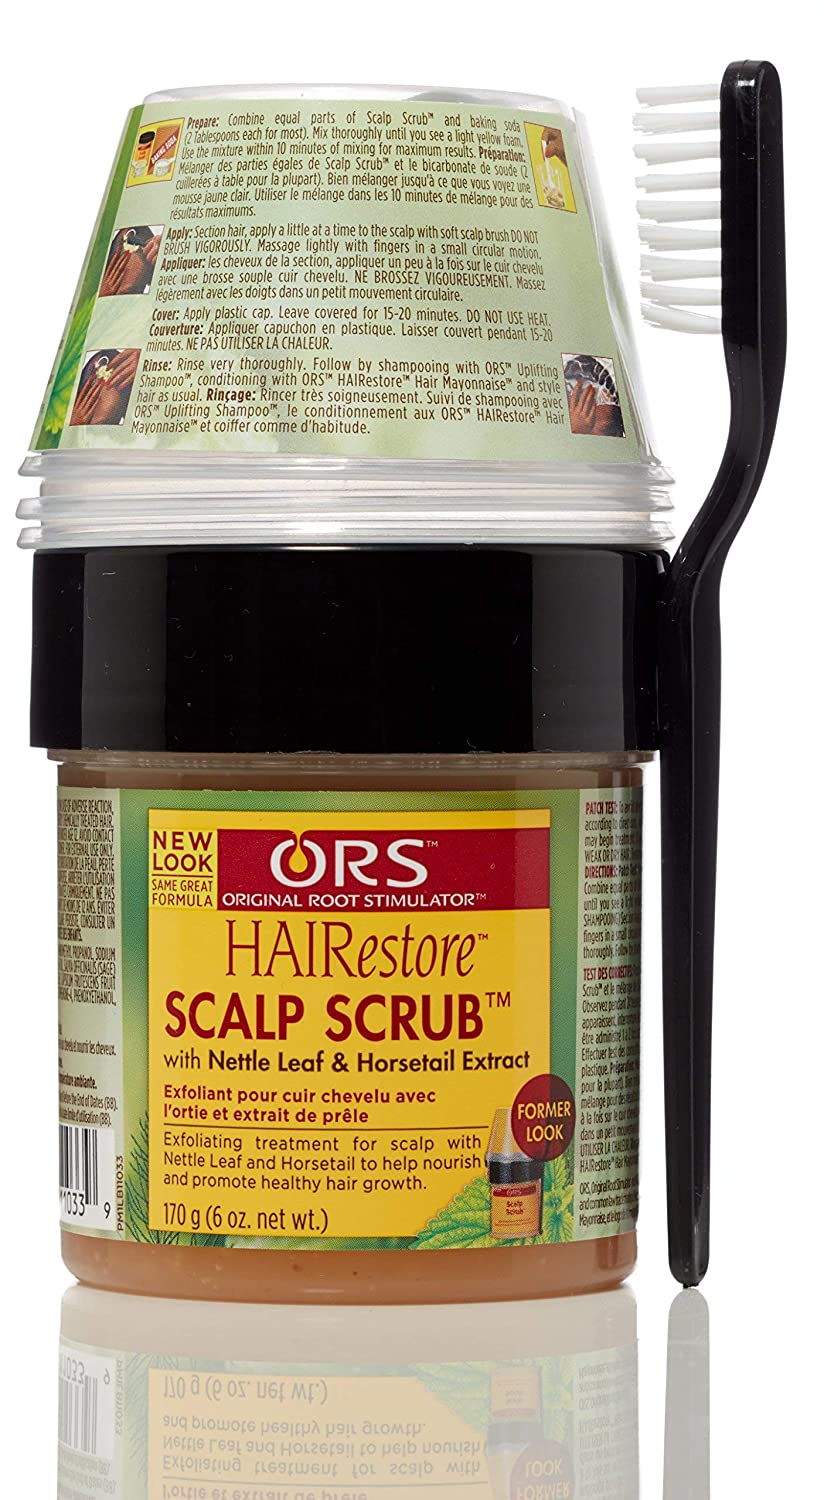 Organic Root Stimulator Scalp Scrub Stimulating Formula for Hair and Scalp, 6 Ounce Atlas Ethnic 11033